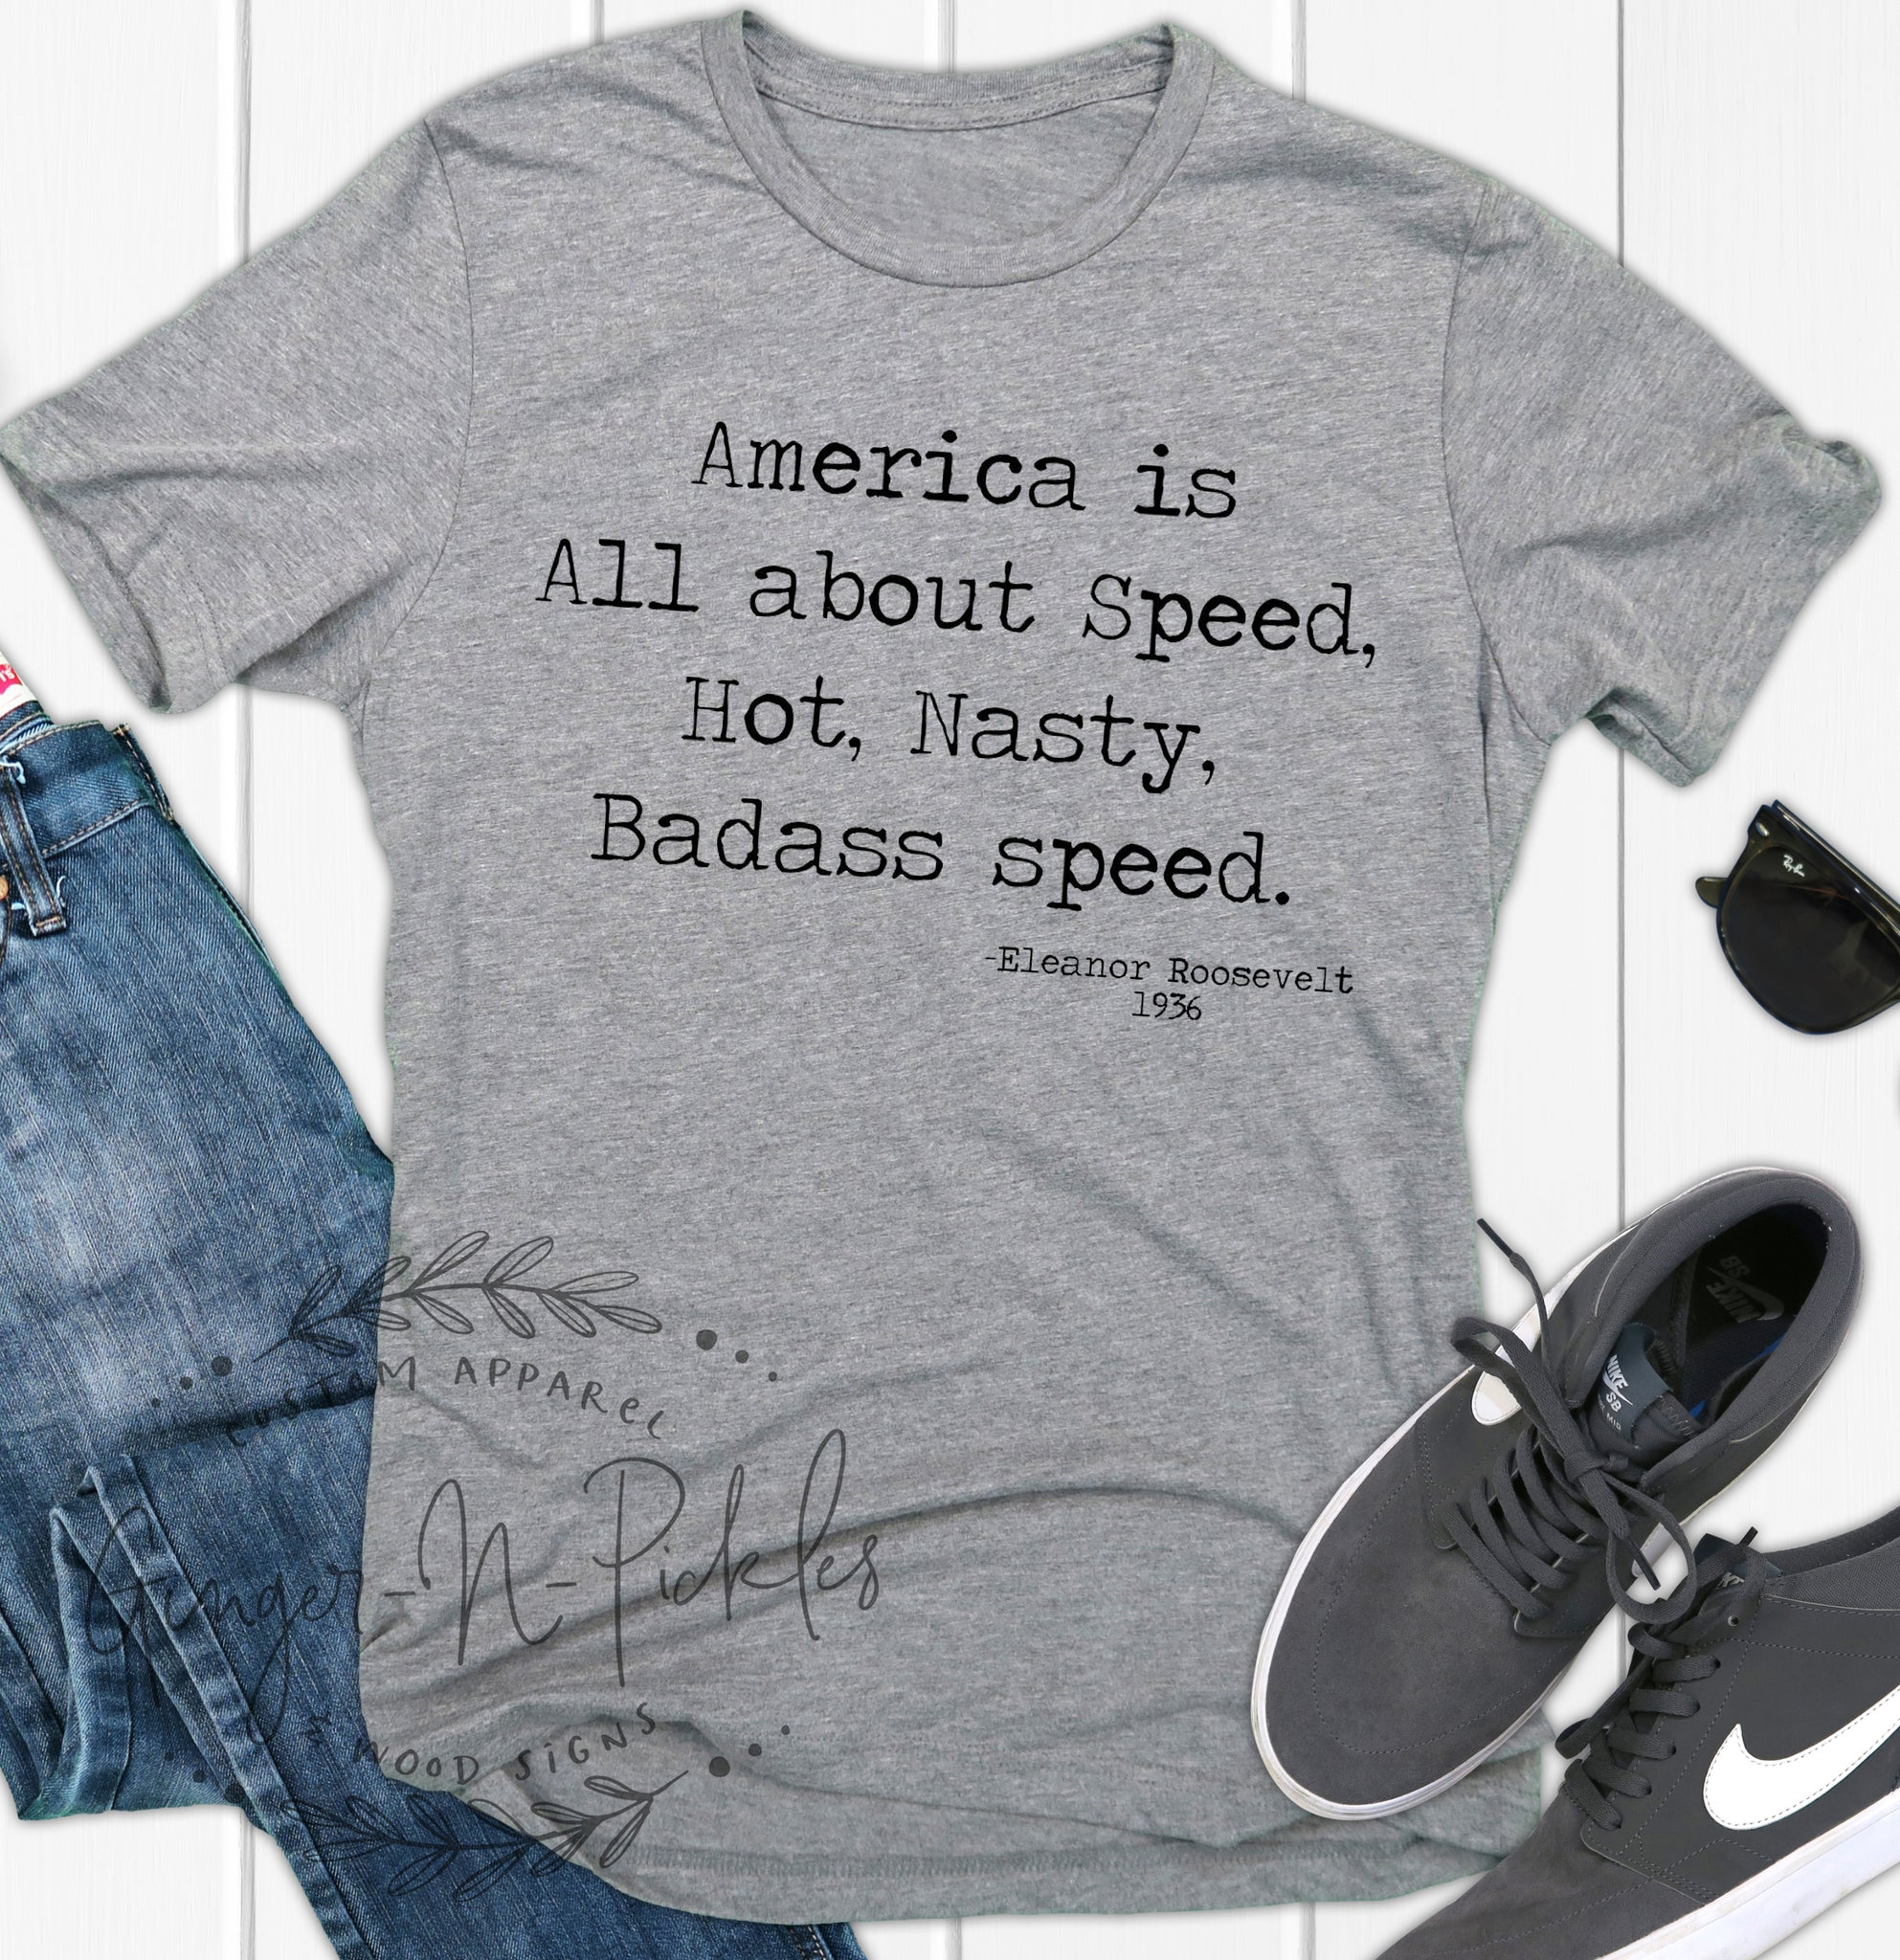 America Is All About Speed Hot Nasty Badass Speed Shirt Racing Shirt Dirt Bike Shirt Eleanor Roosevelt Quote Badass Speed Shirt Gift for Him